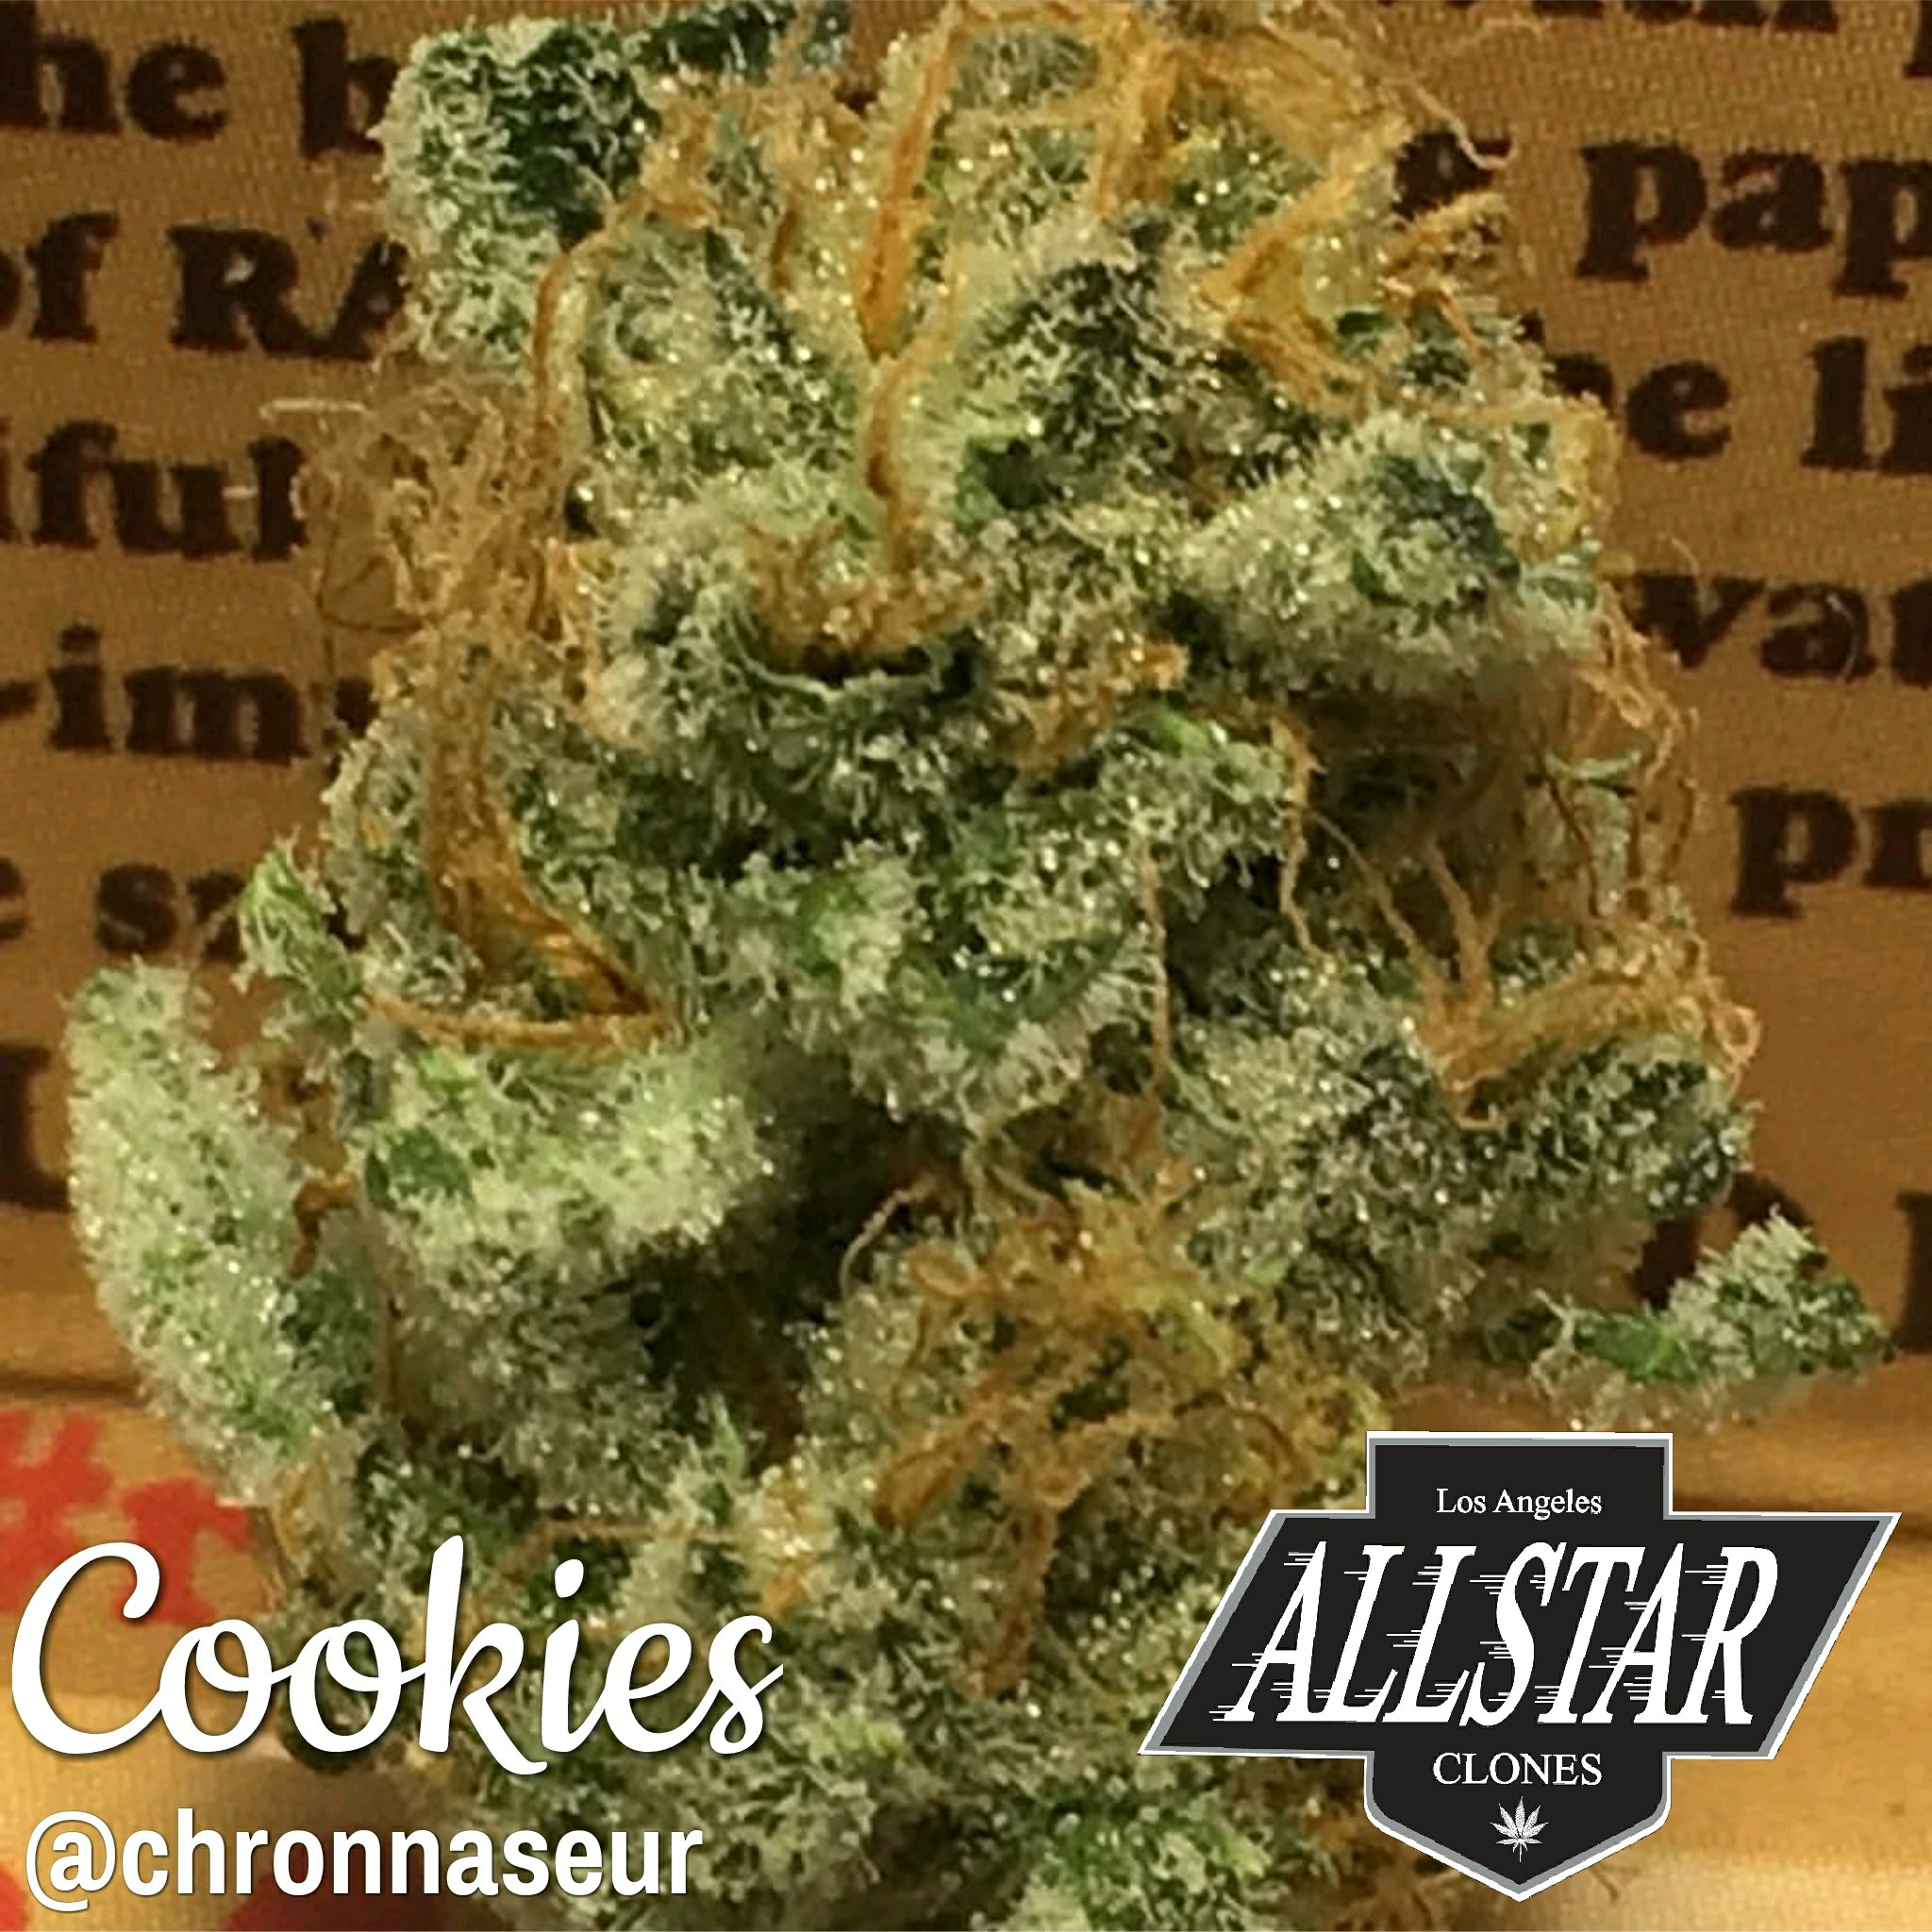 All Star Cookies